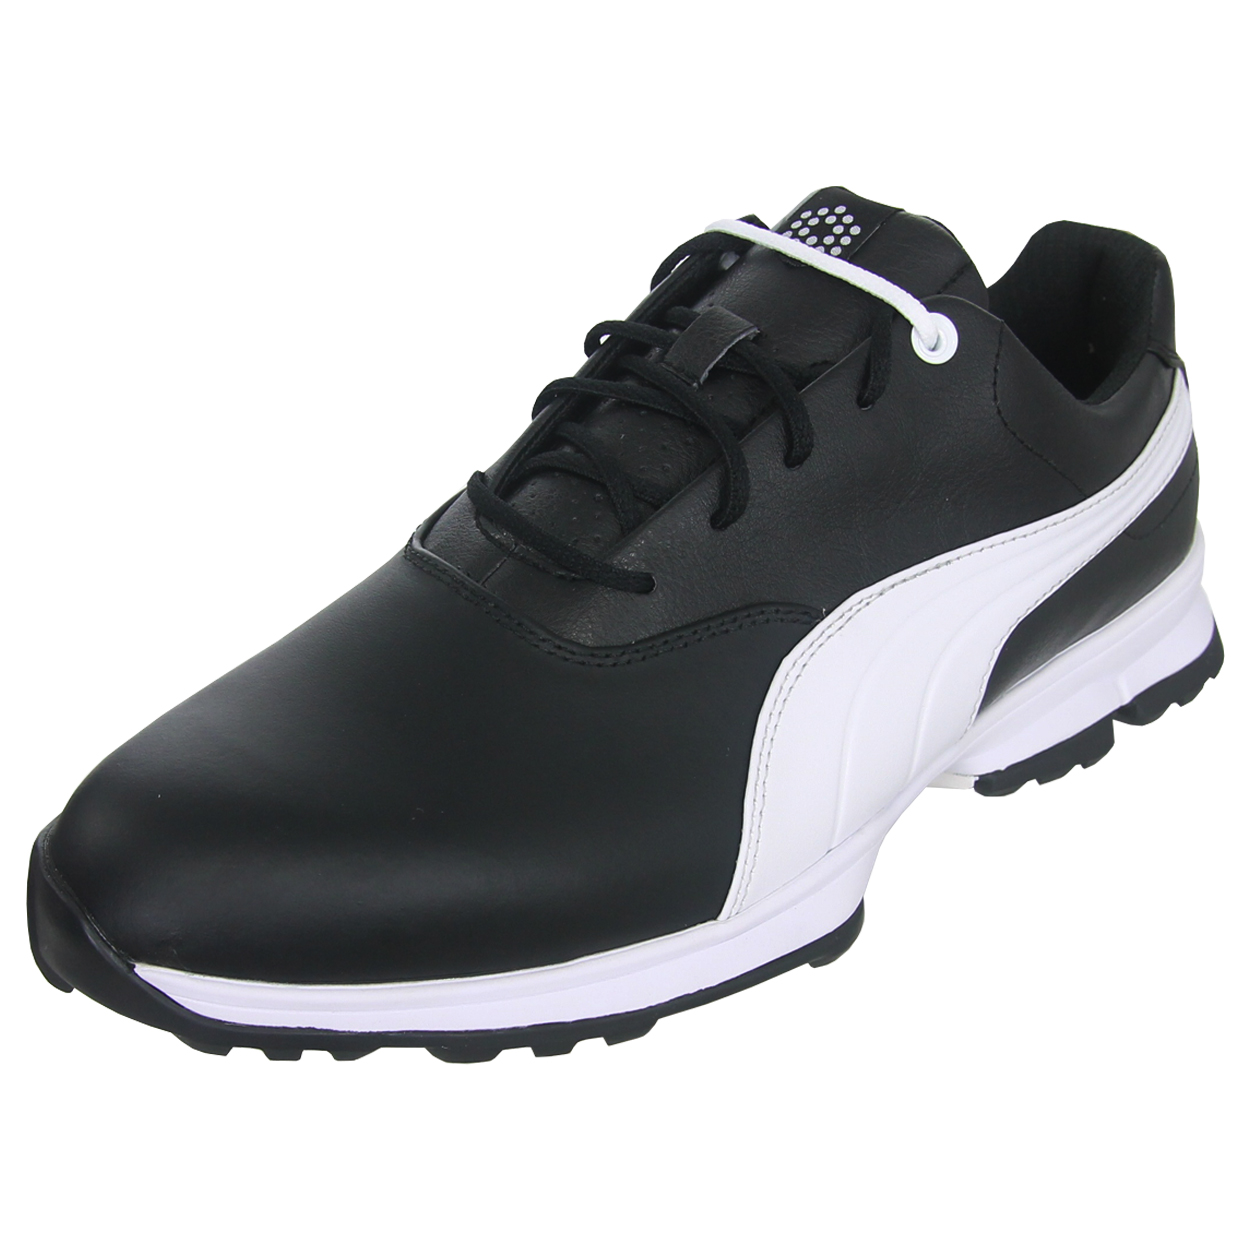 puma waterprof